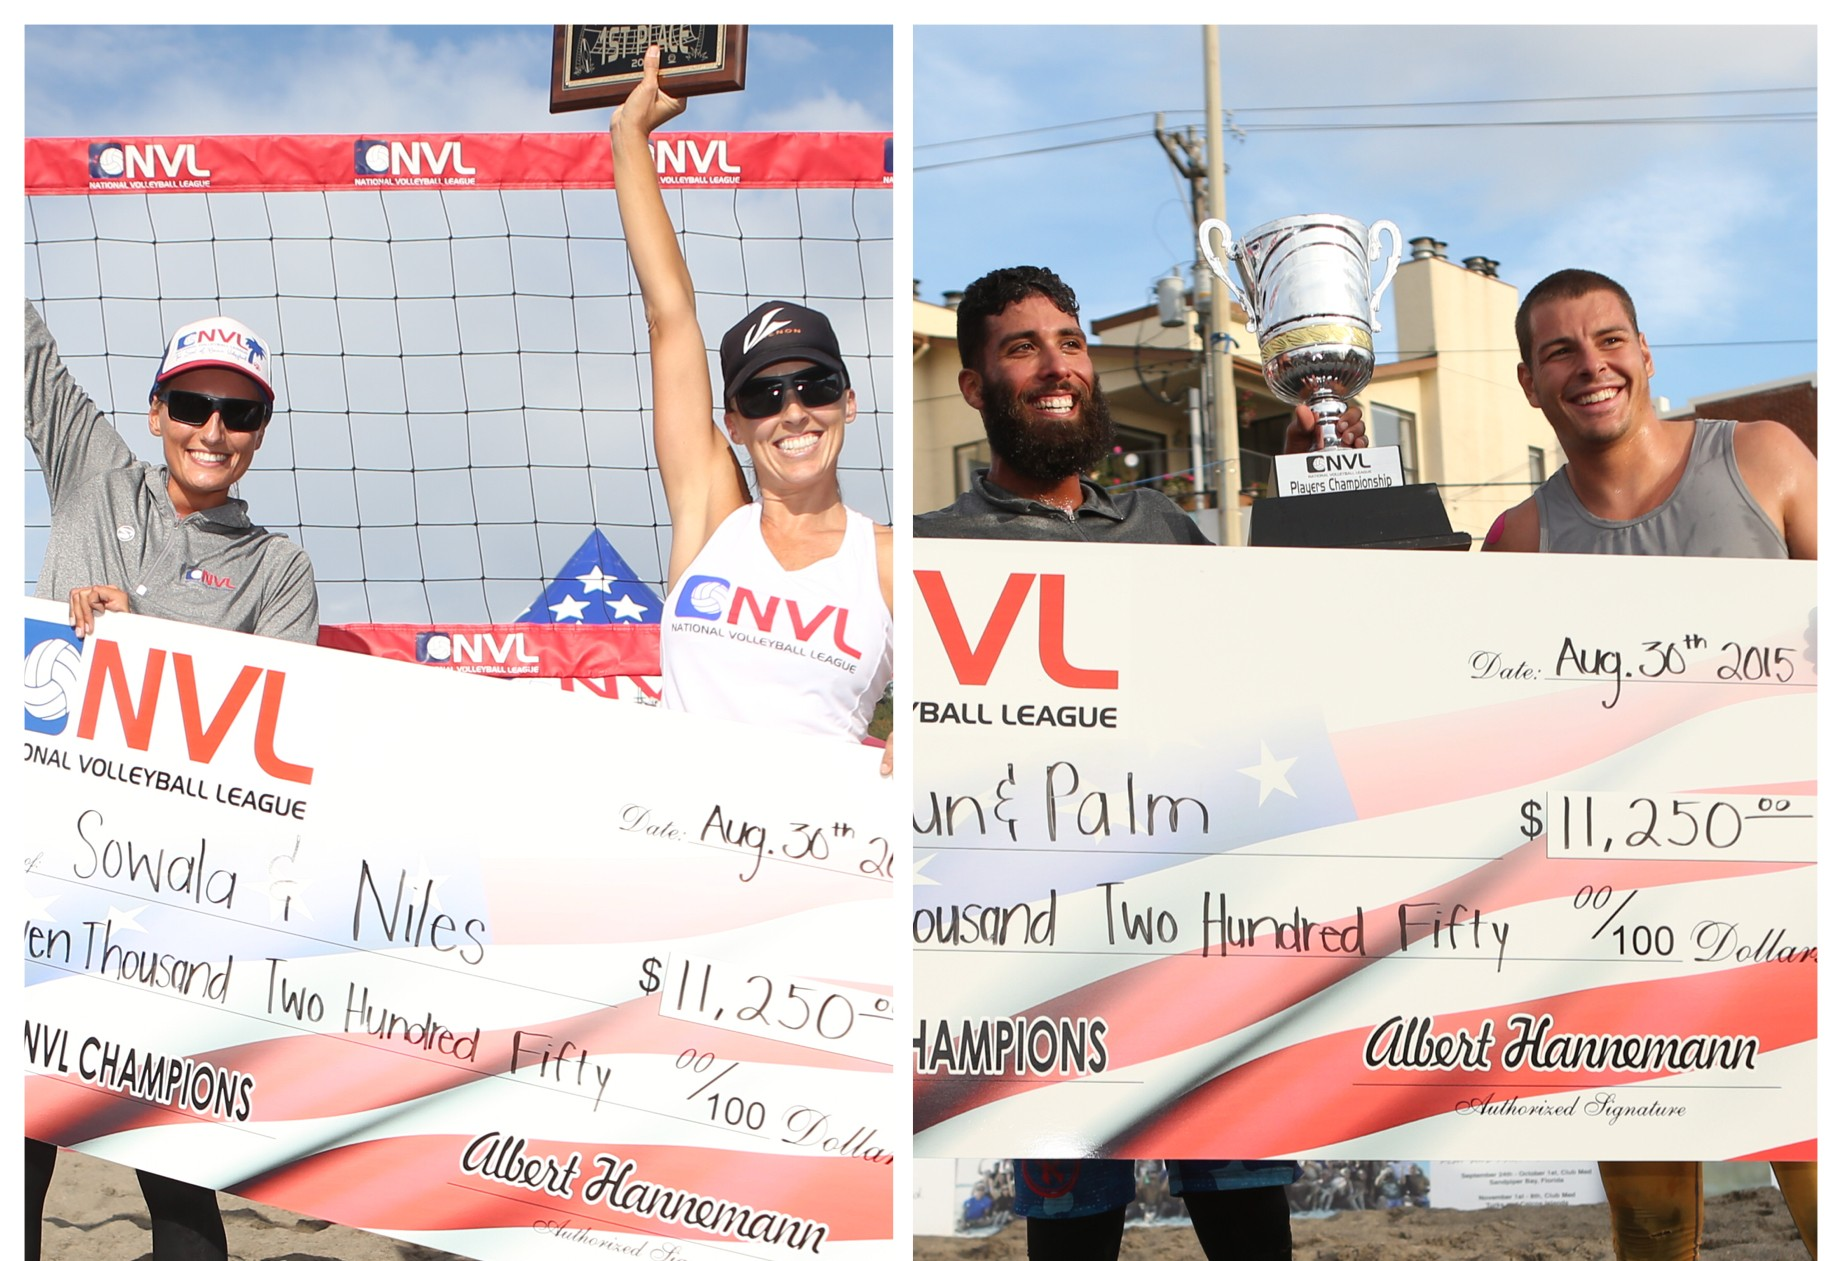 Back-to-Back Wins for Dave Palm & Eric Zaun; Second 2015 Season Title for Brooke Niles & Karolina Sowala at NVL Seattle Championships